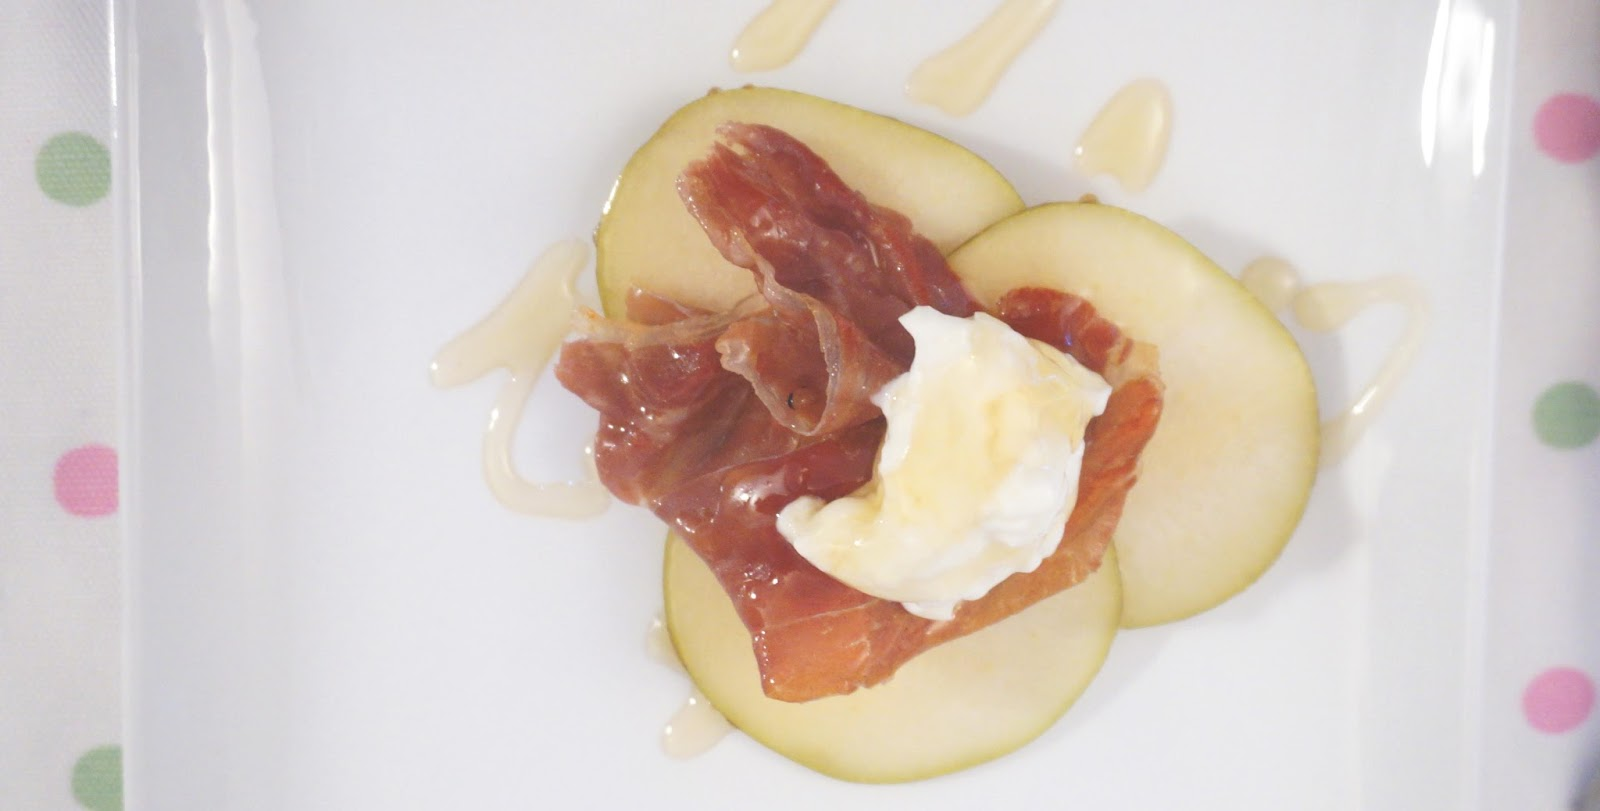 meg-made: Pear with Proscuitto and yoghurt for Brunch Dessert